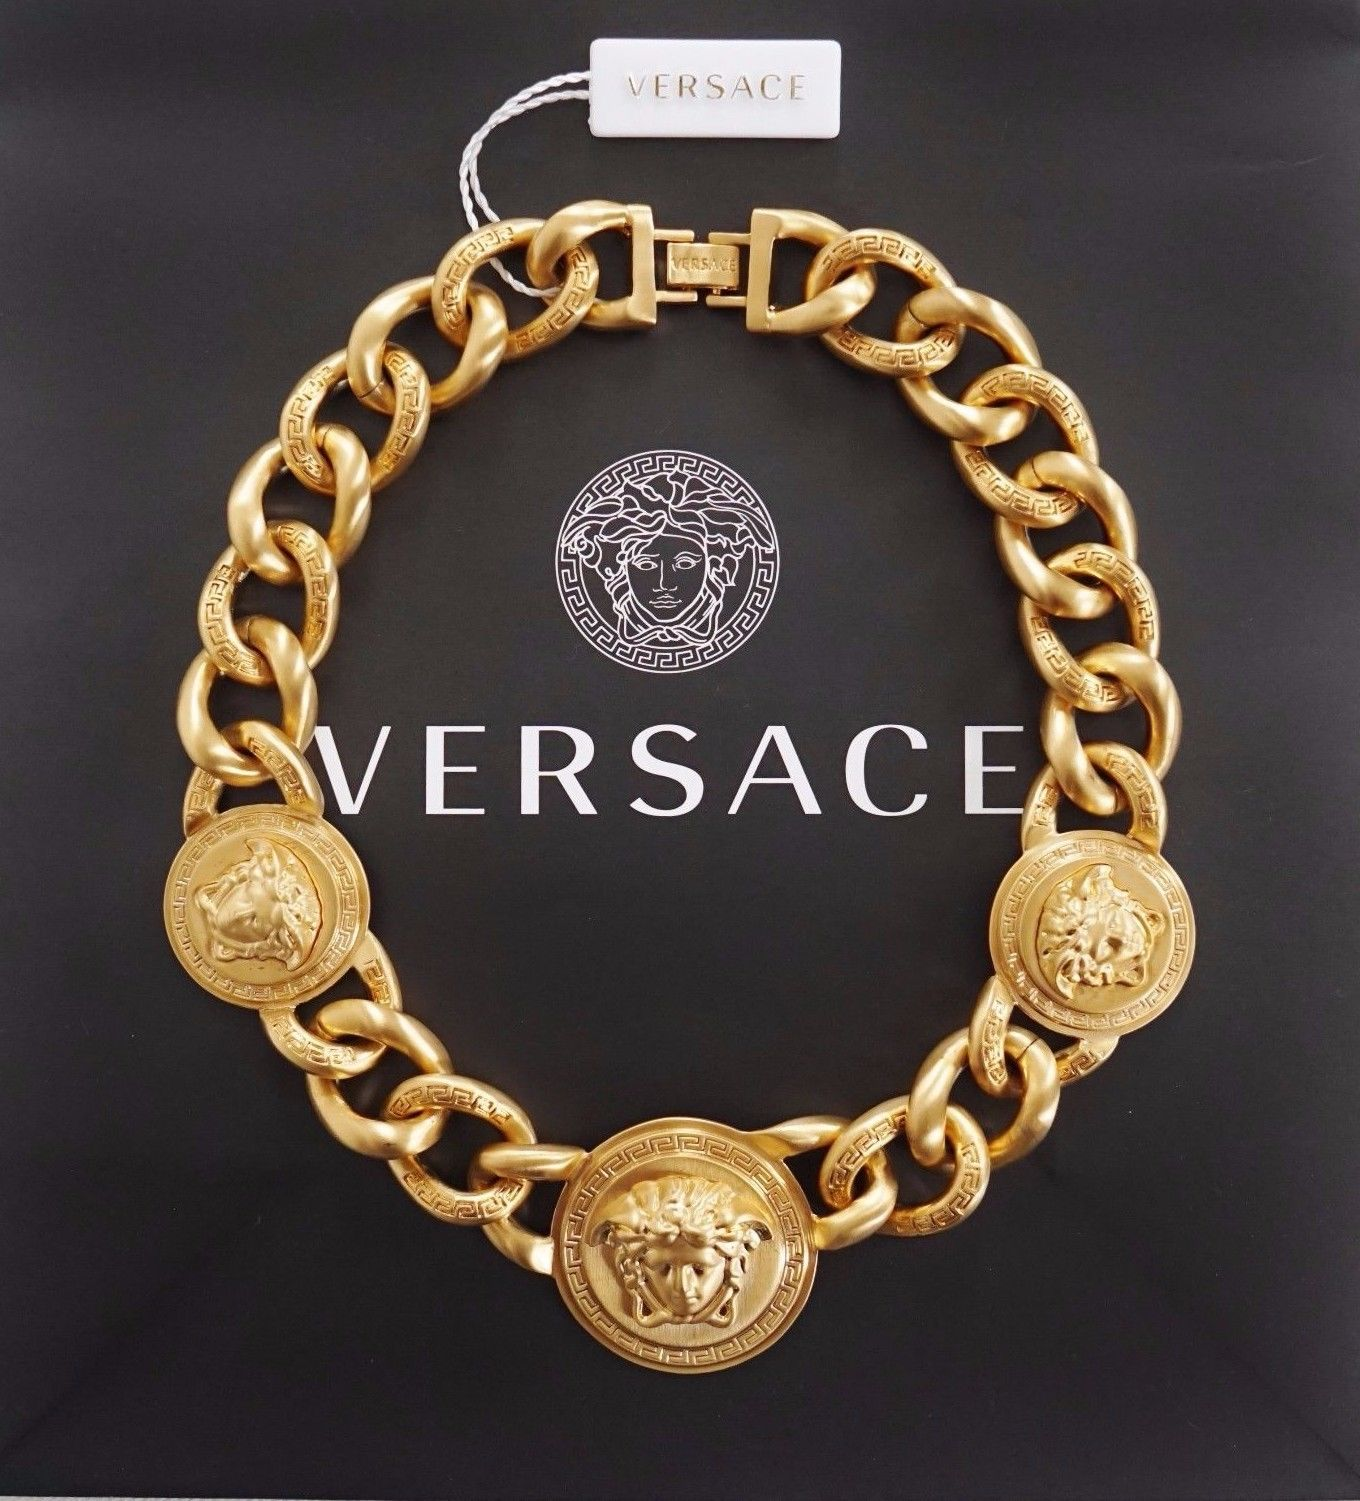 Versace Iconic 3 Medusa medallions chain necklace